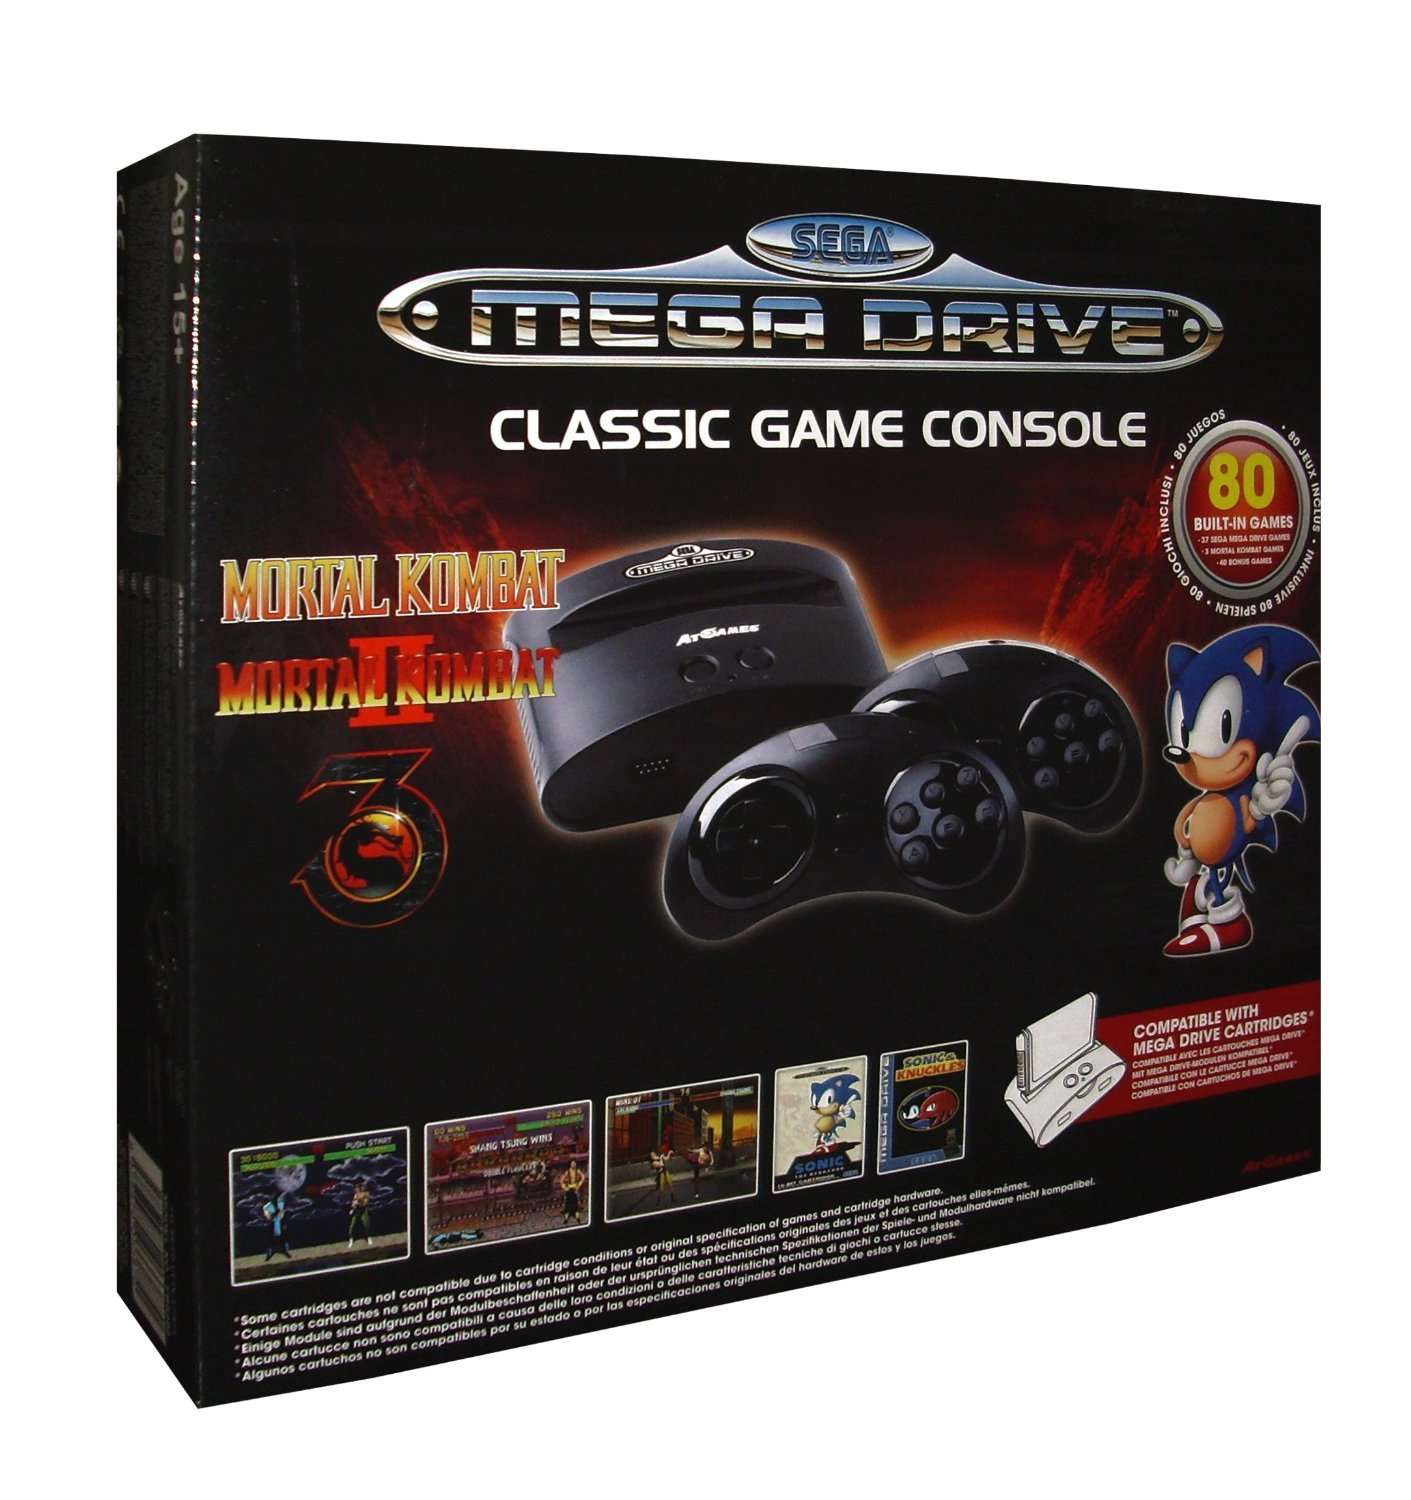 Sega Genesis Deluxe Classic Game Console Exclusive 85 Built in Games